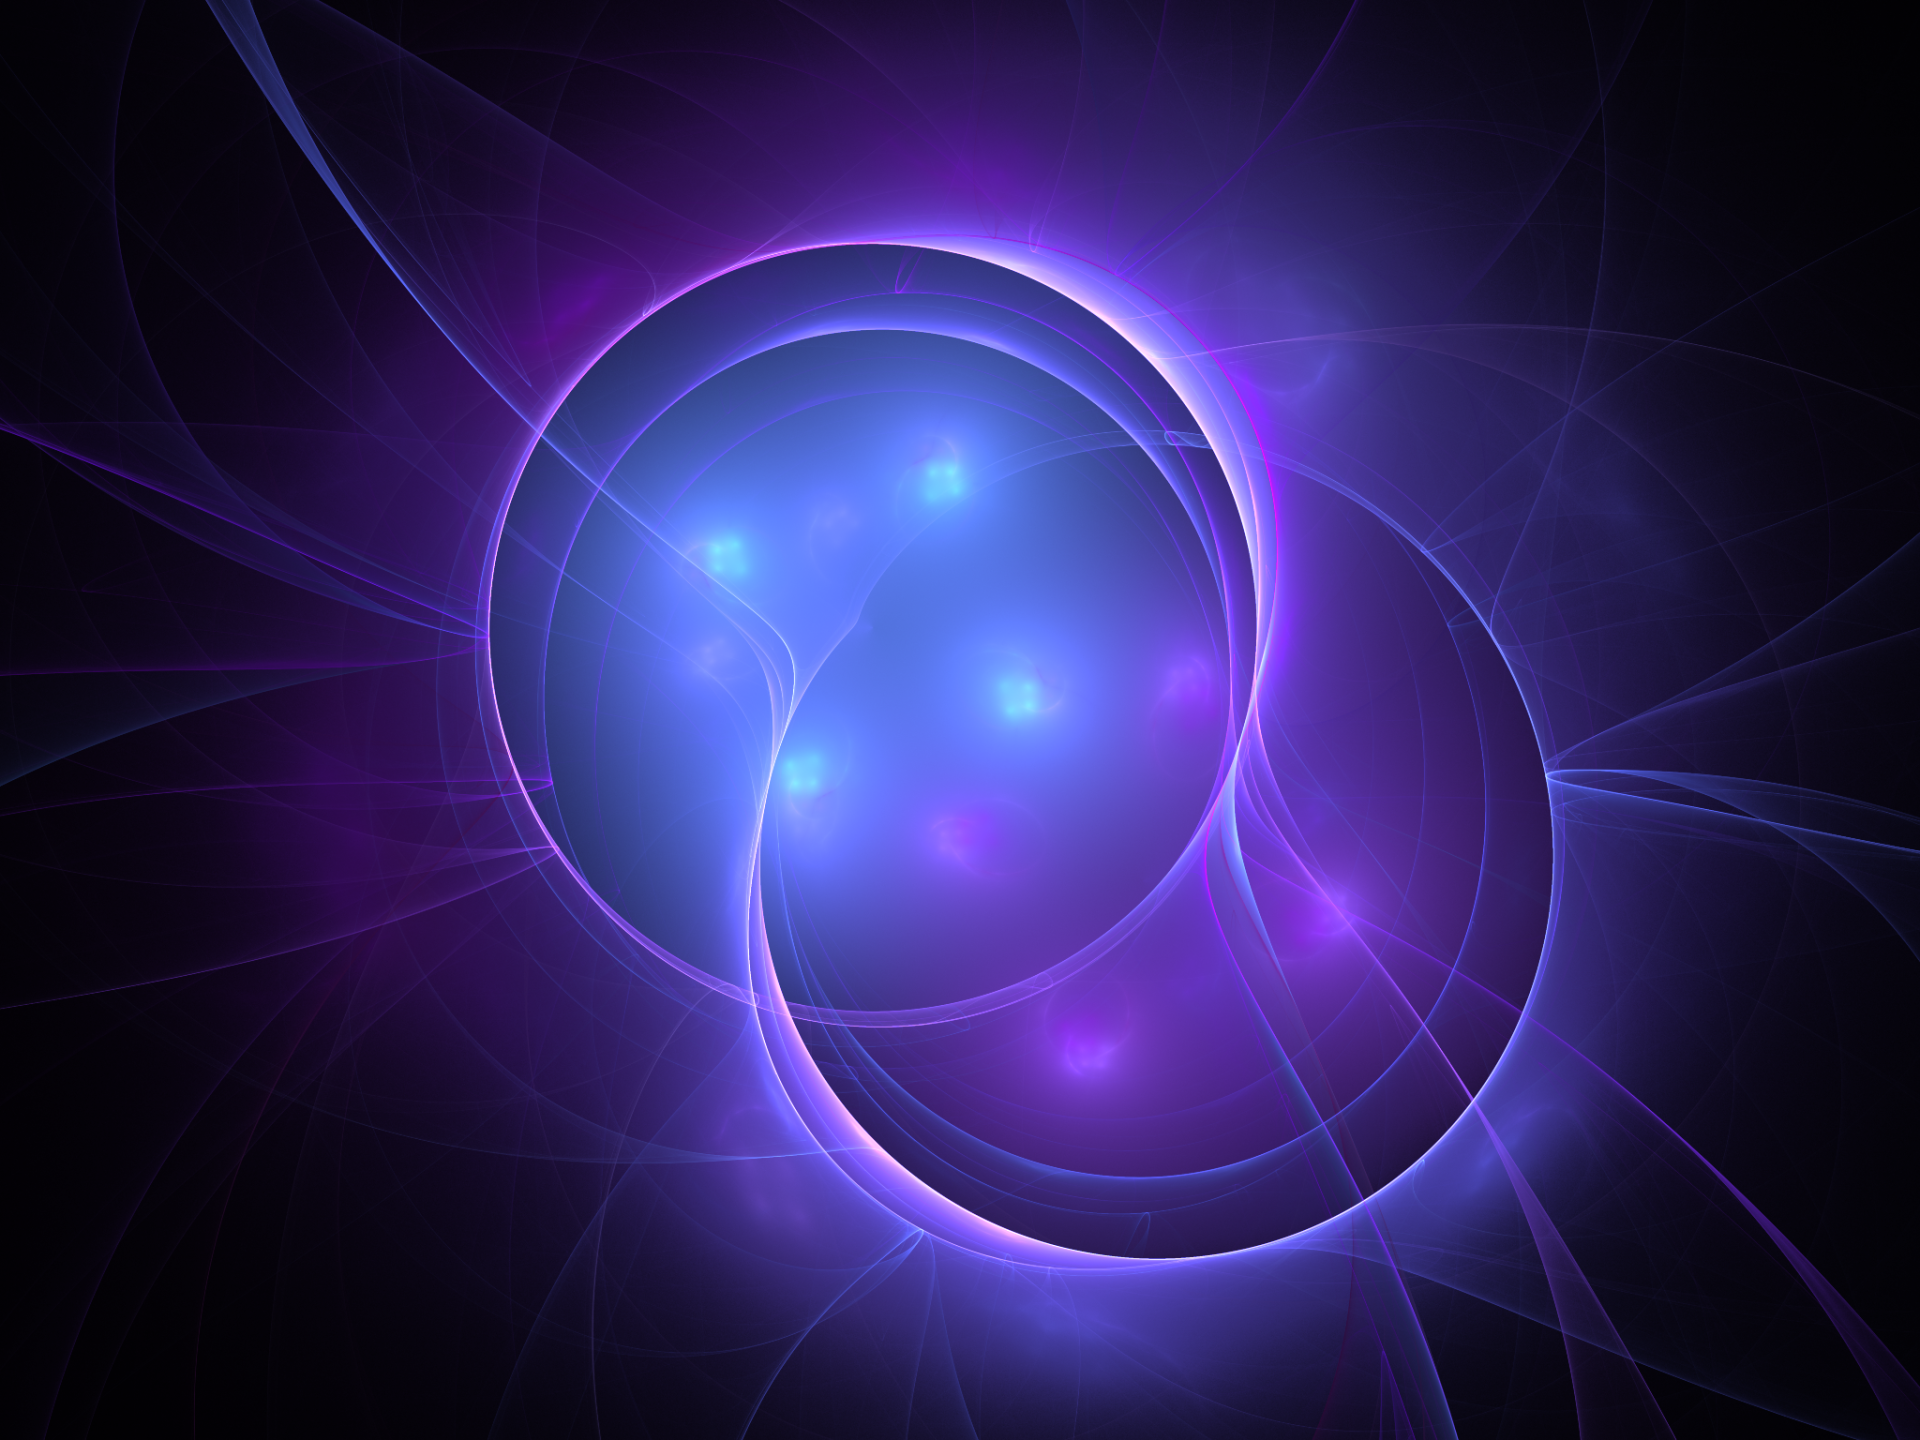 Abstract - Fractal  Plasma Apophysis (software) Digital Art Violet Energy Circle Wallpaper